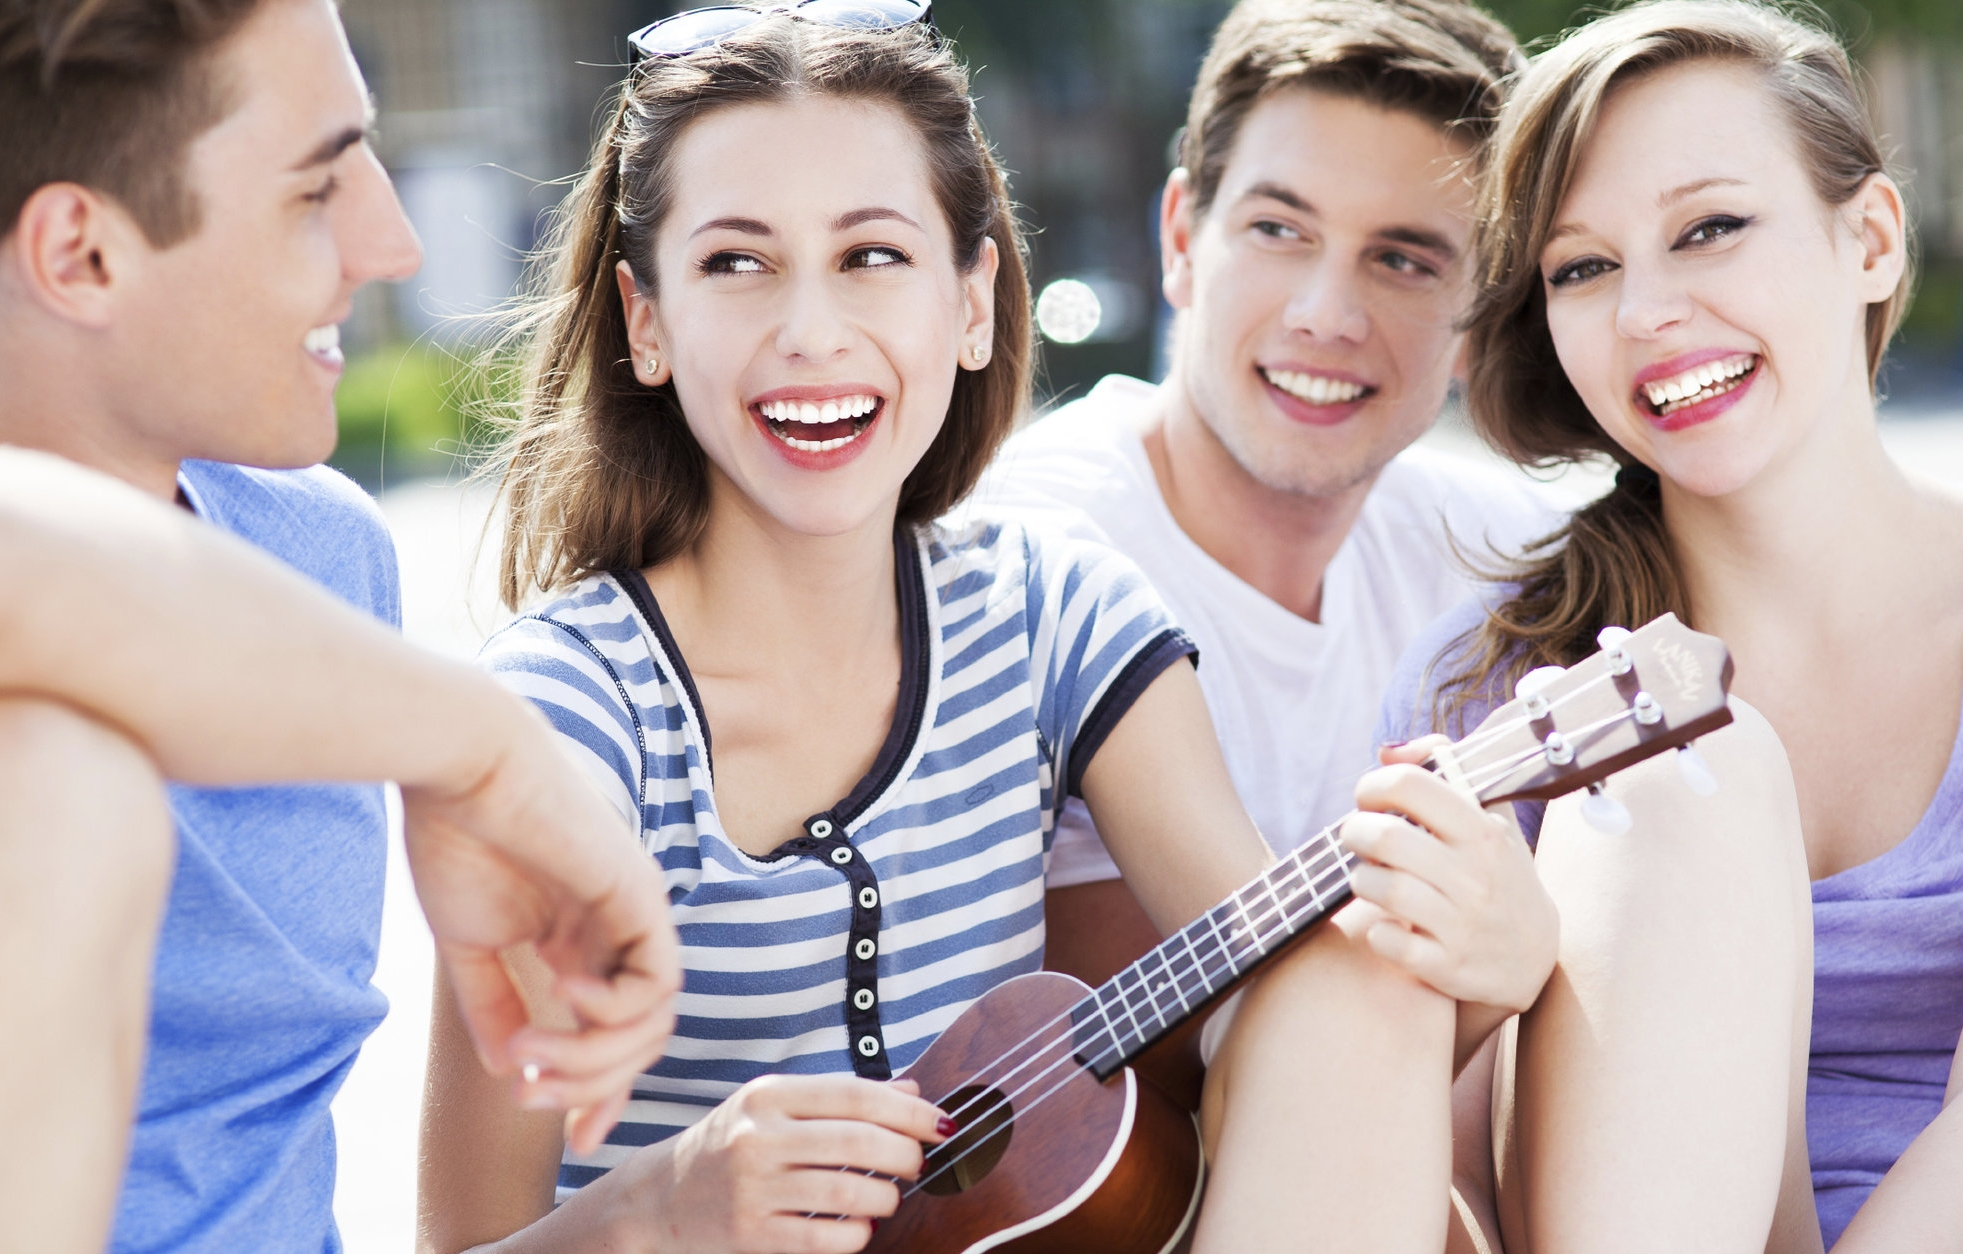 Orthodontics isn't just for kids. We may be able to help you straighten your smile as well.